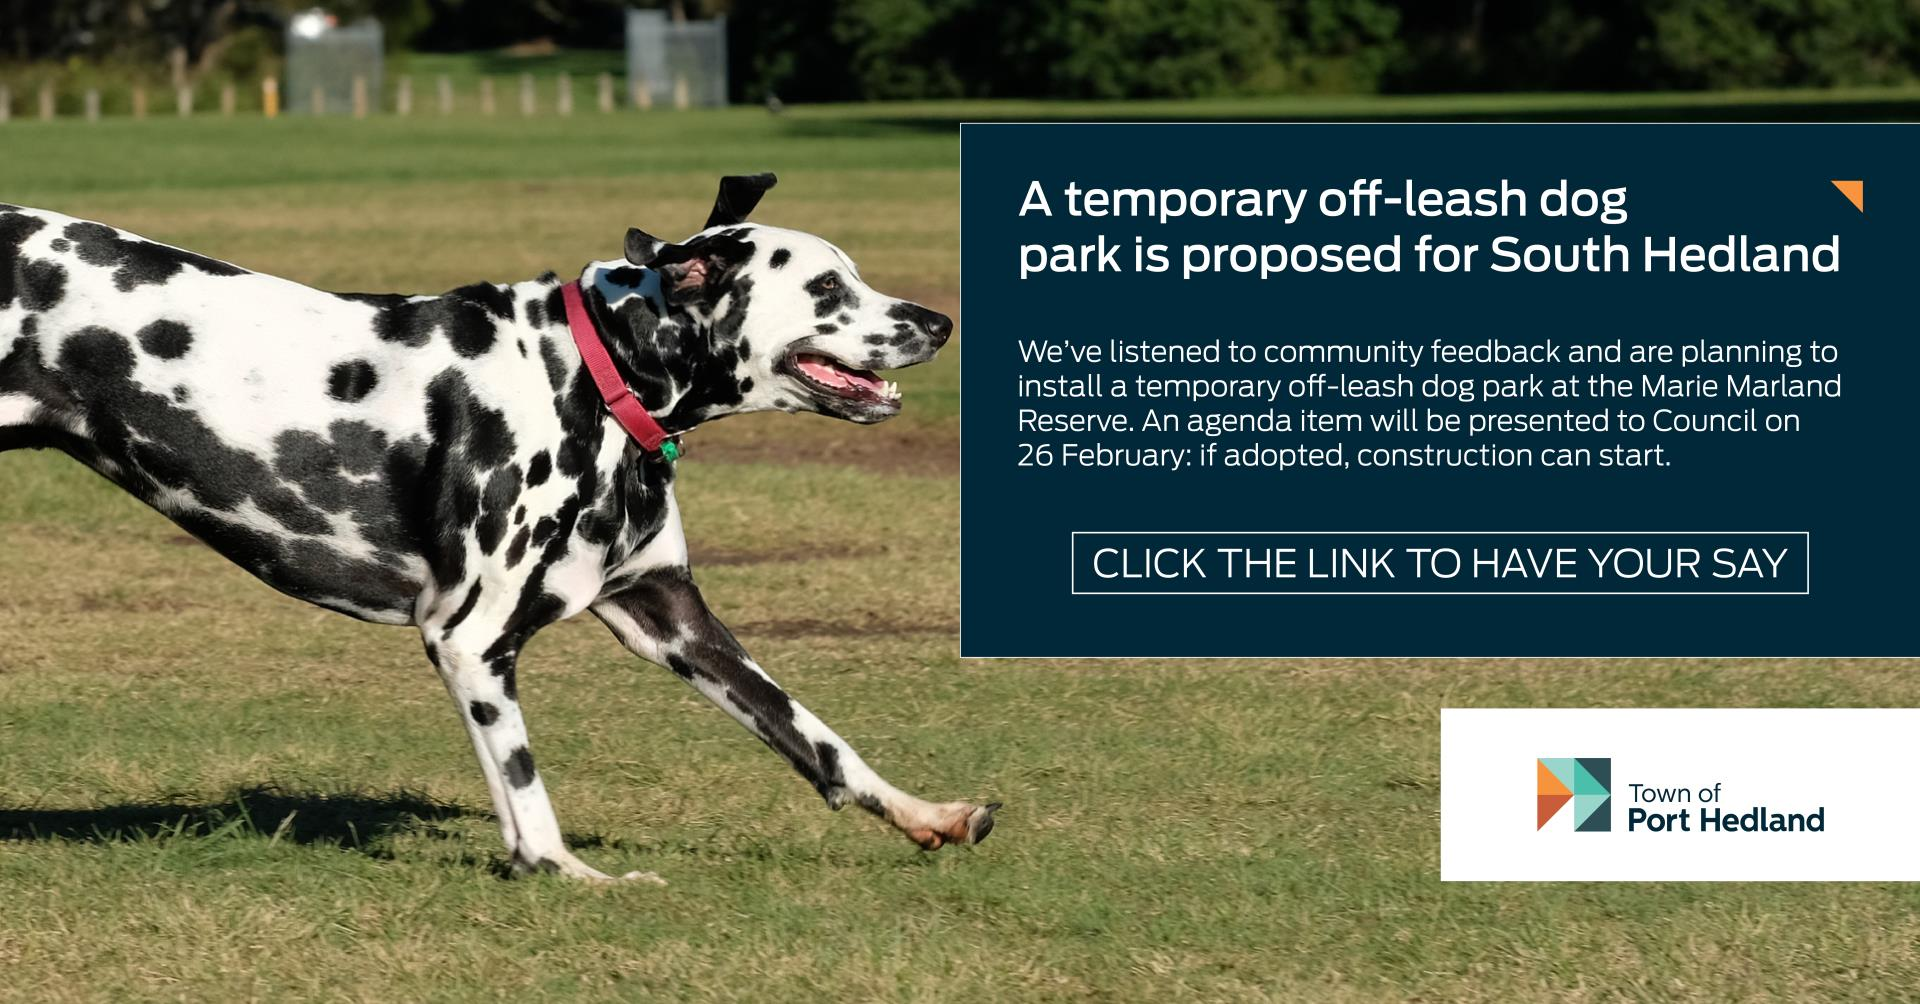 Have Your Say on Off-leash Dog Park in South Hedland